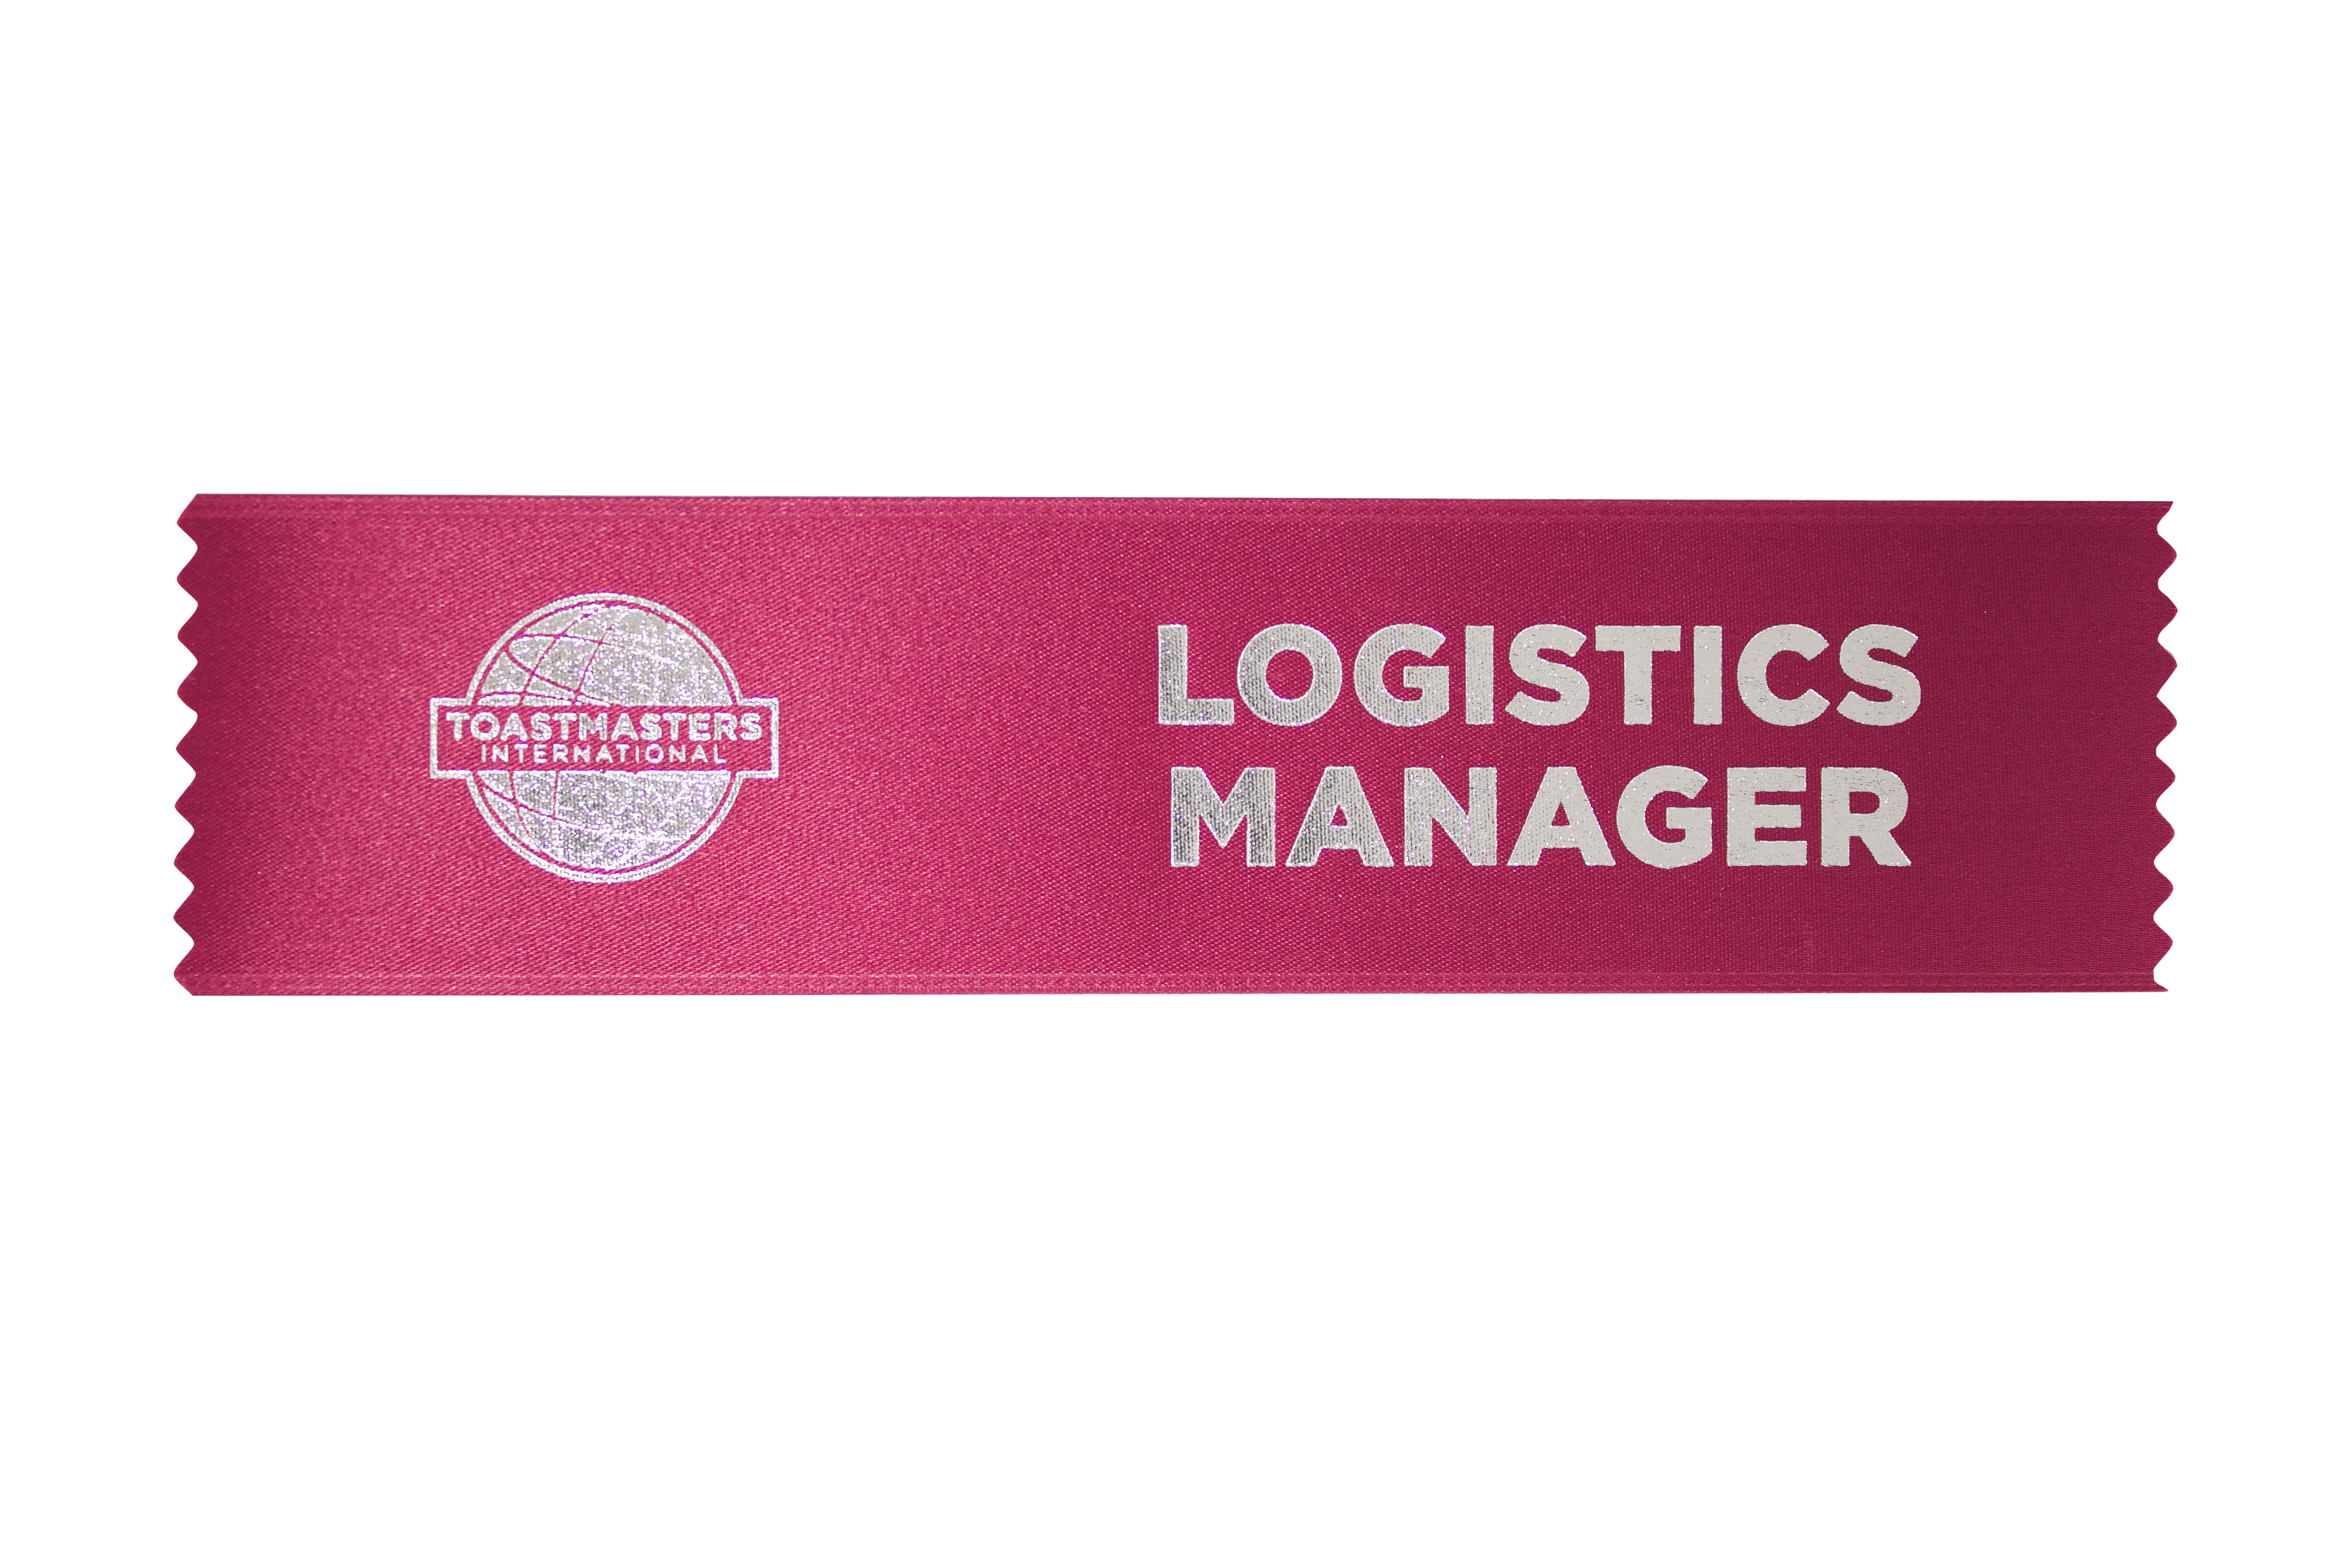 Logistics Manager Ribbon